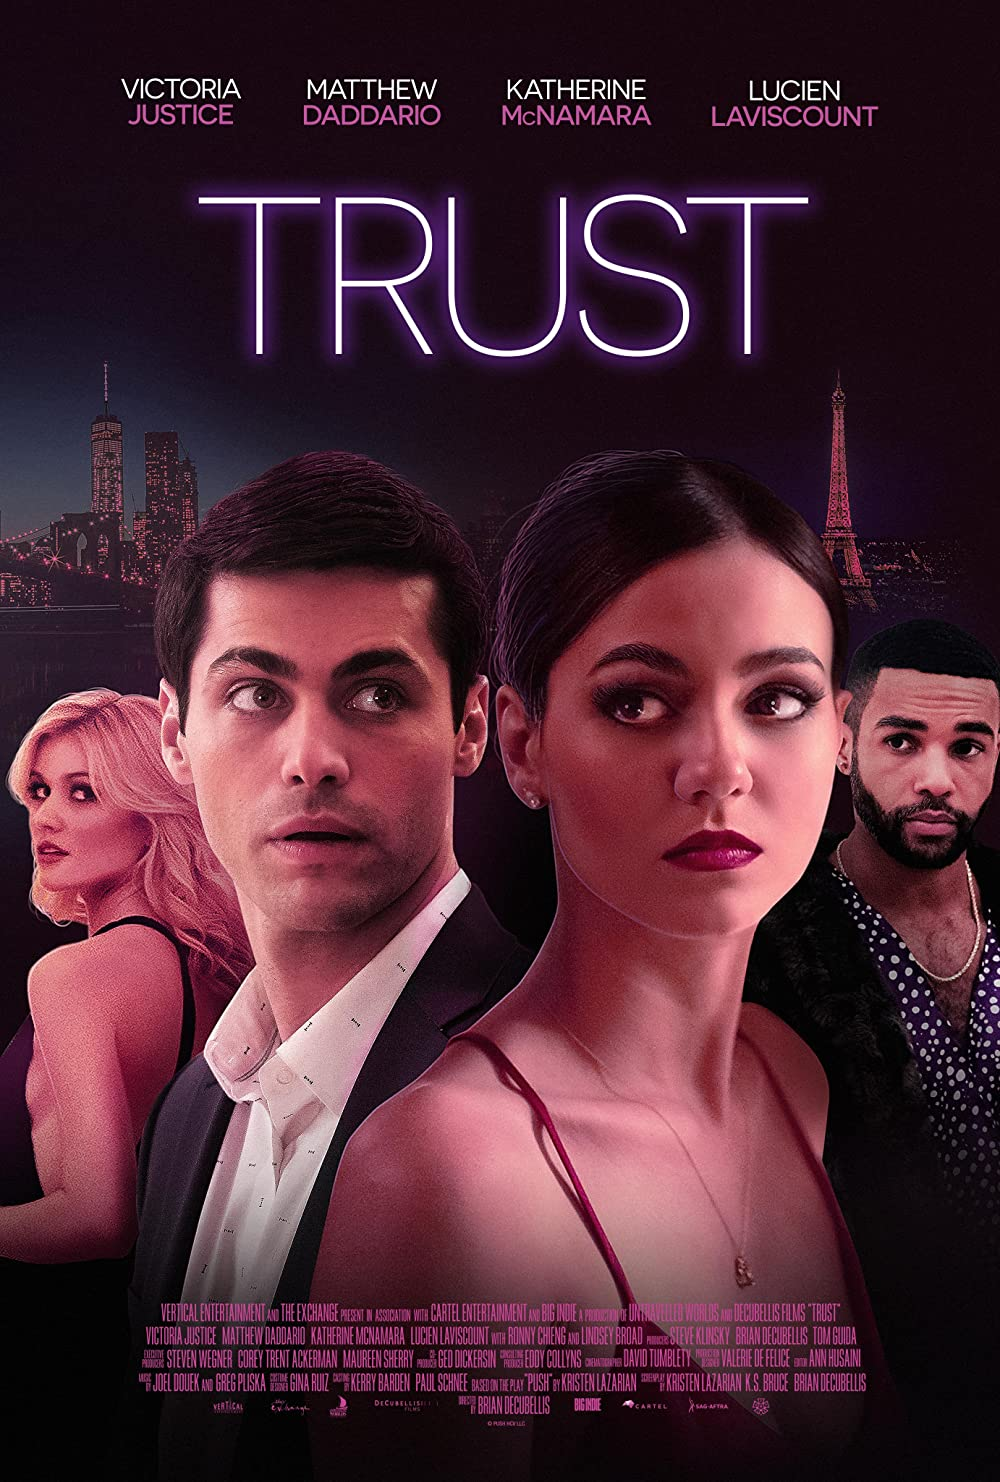 18+Trust (2021) English Movie 720p HDRip AAC